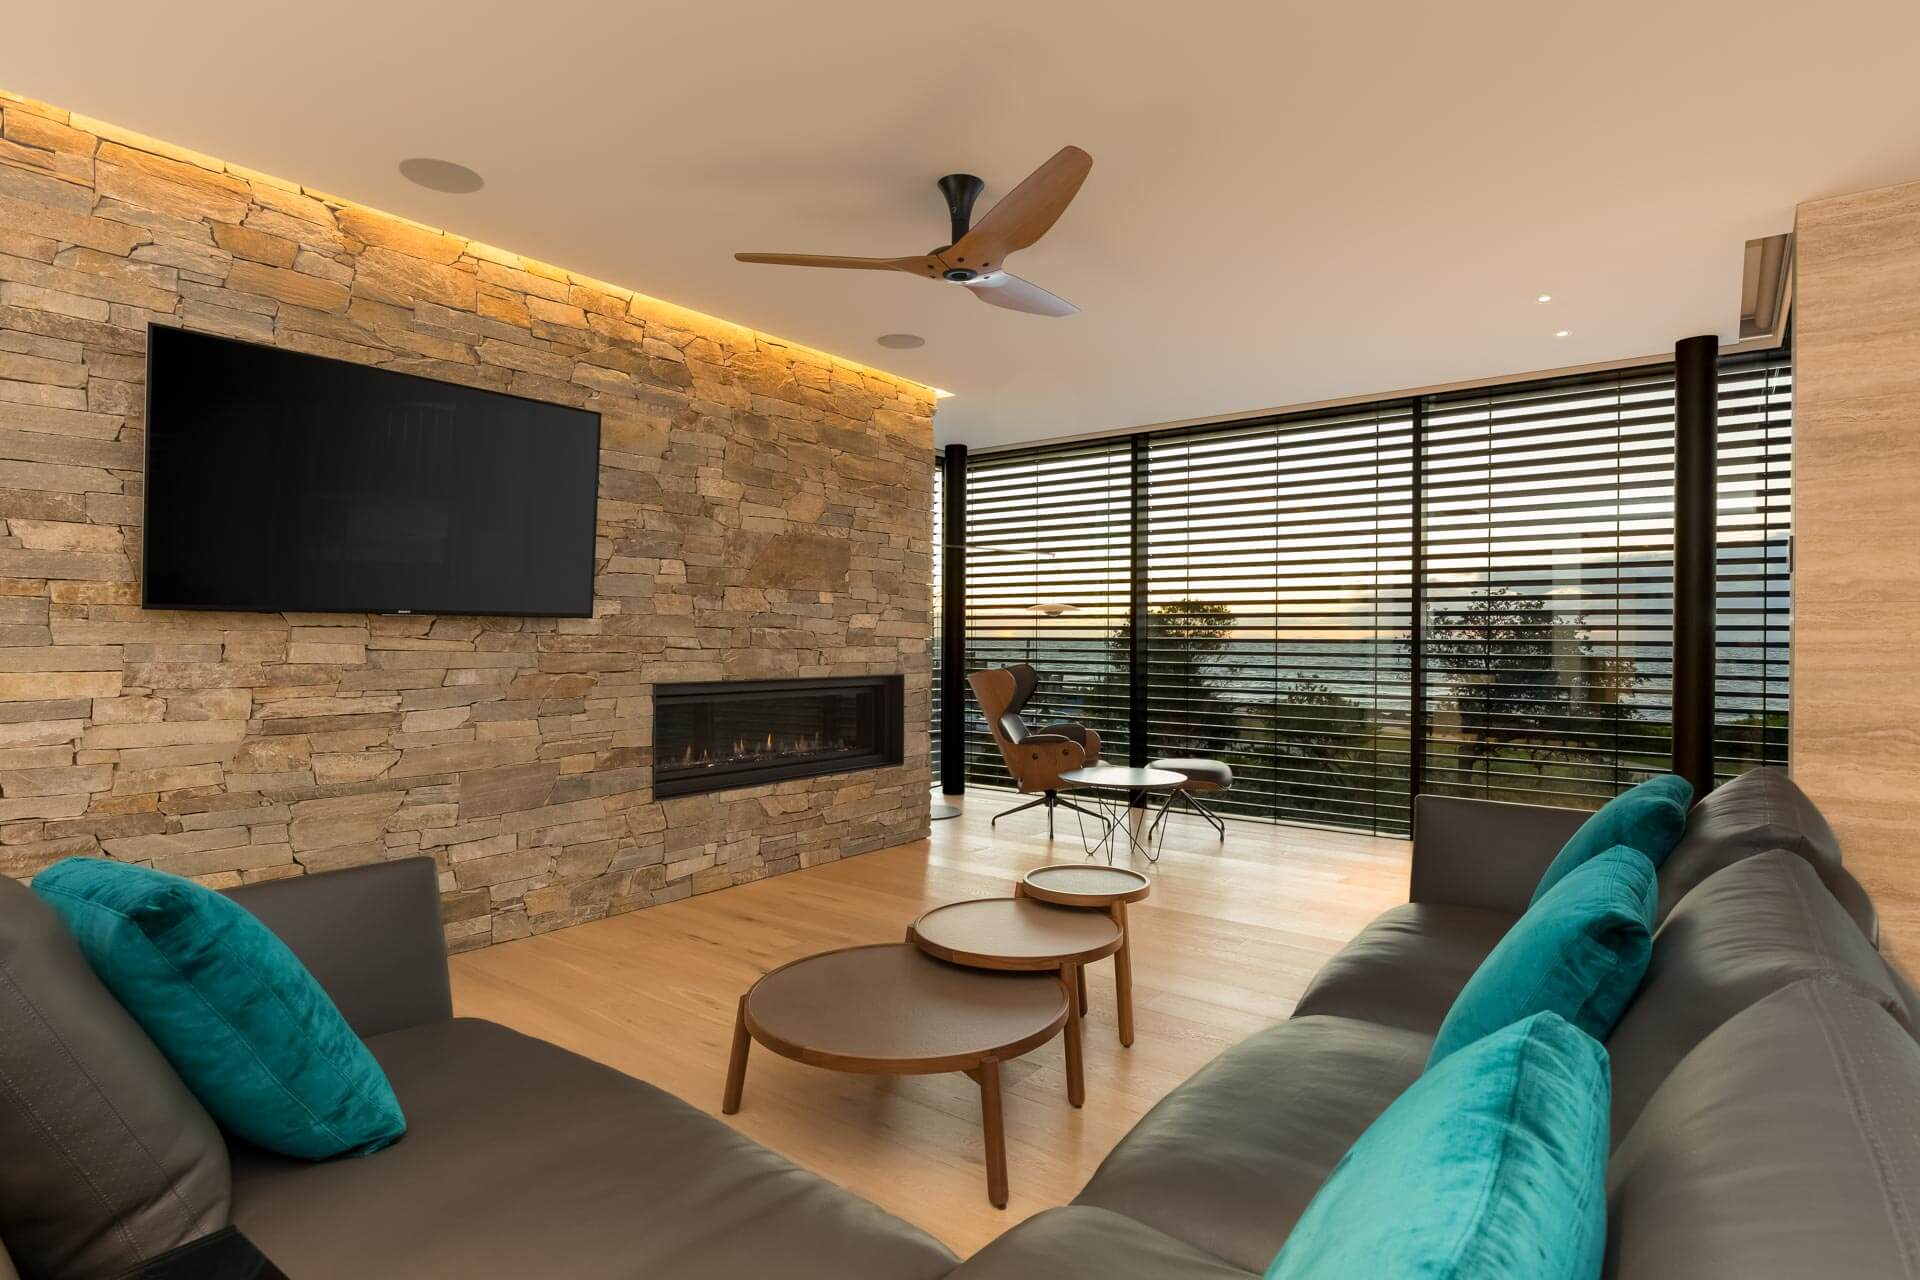 Custom design lounge area with couch cushions stone wall tv and fireplace with sunset overlooking Brighton bayside melbourne Architectural Photography Roger Thompson Photography